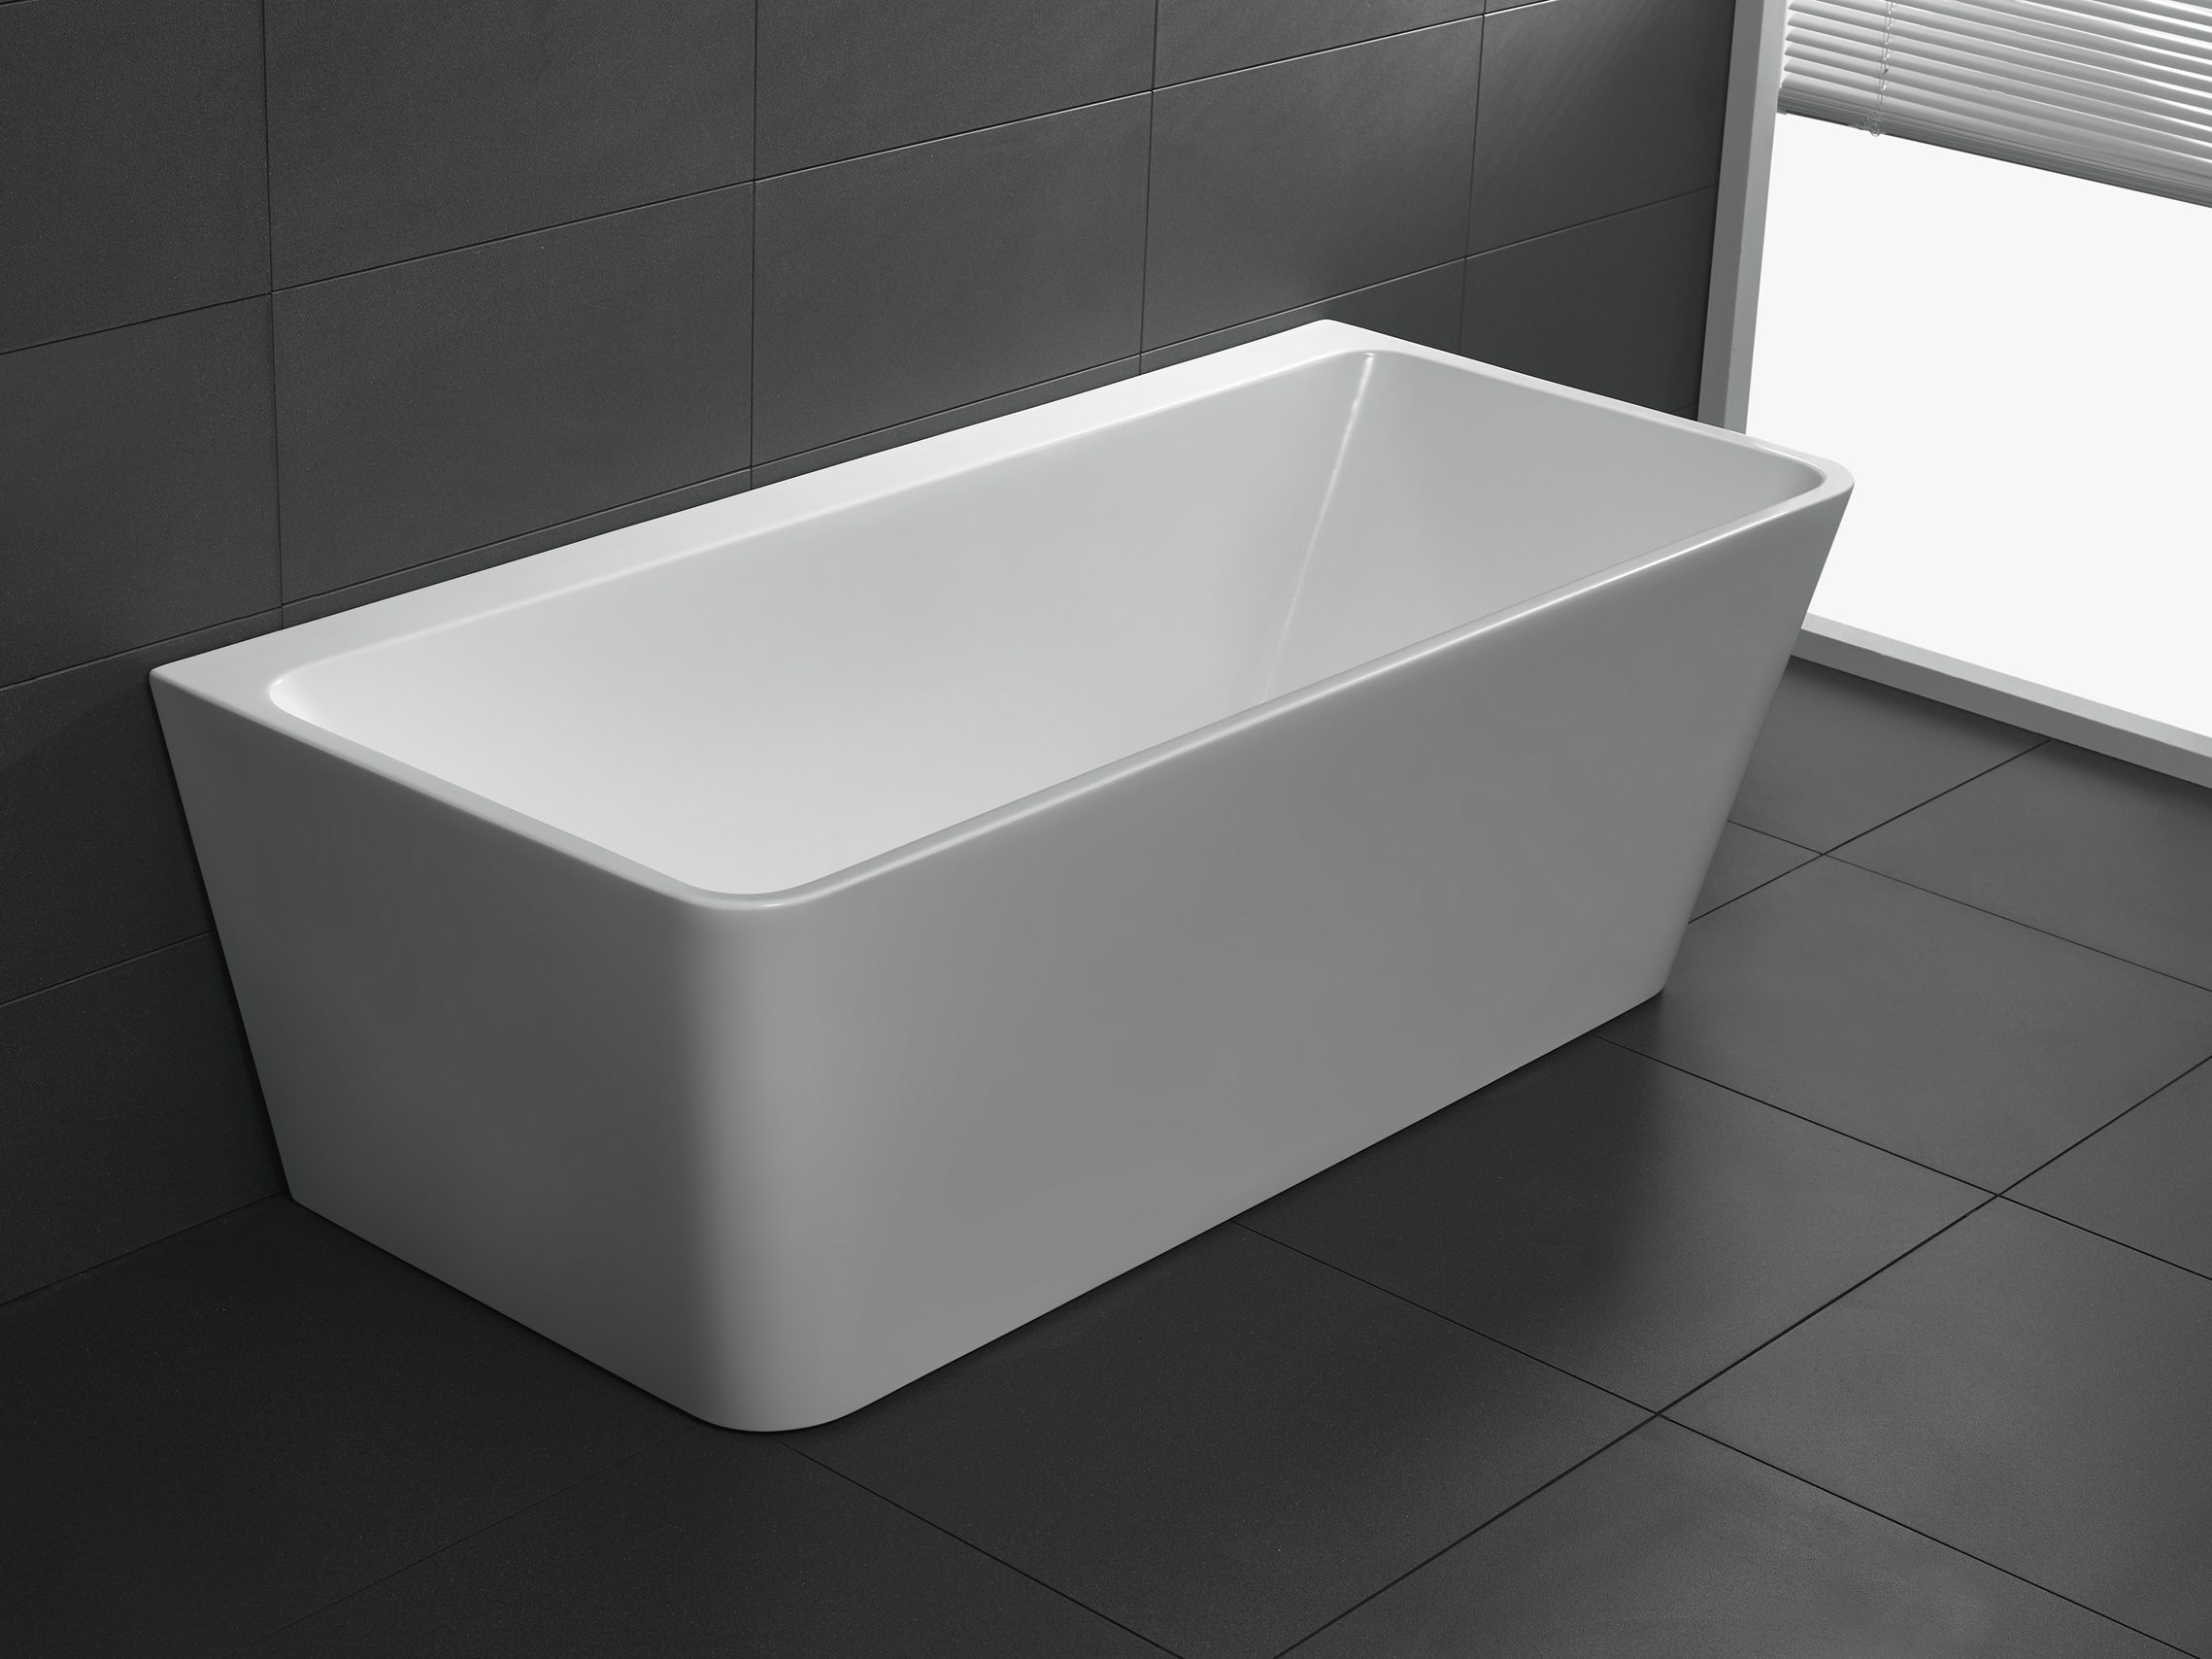 Freestanding Bathroom Bath Tub Back to Wall 1700 mm Free Standing ...